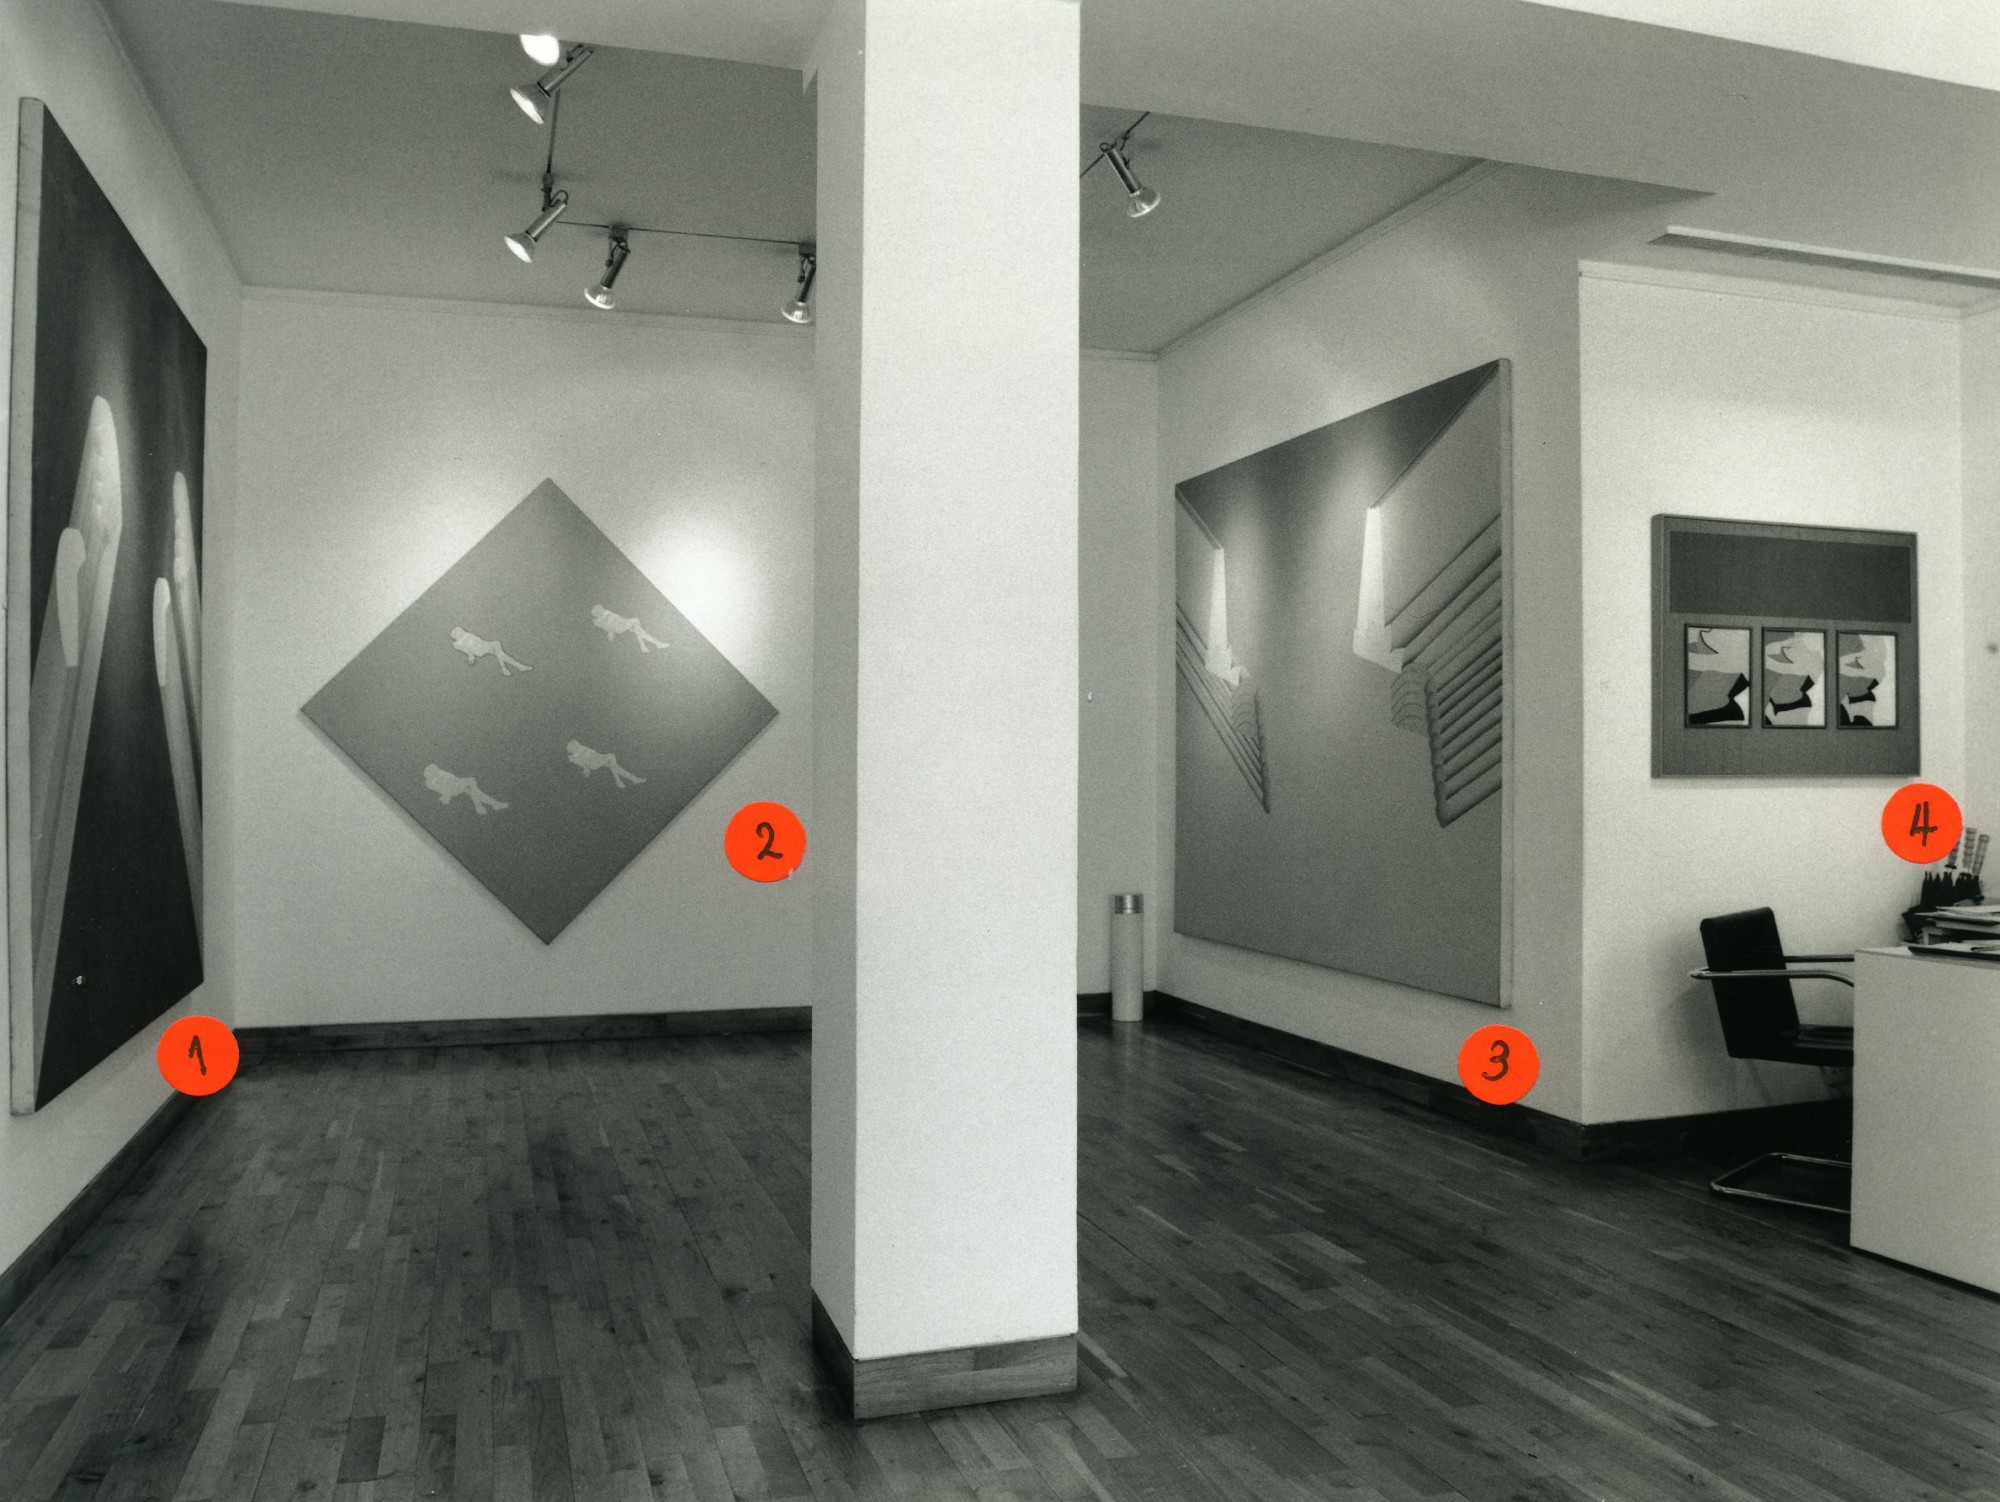 """<span class=""""link fancybox-details-link""""><a href=""""/exhibitions/156/works/image_standalone672/"""">View Detail Page</a></span><p>ANTONY DONALDSON 